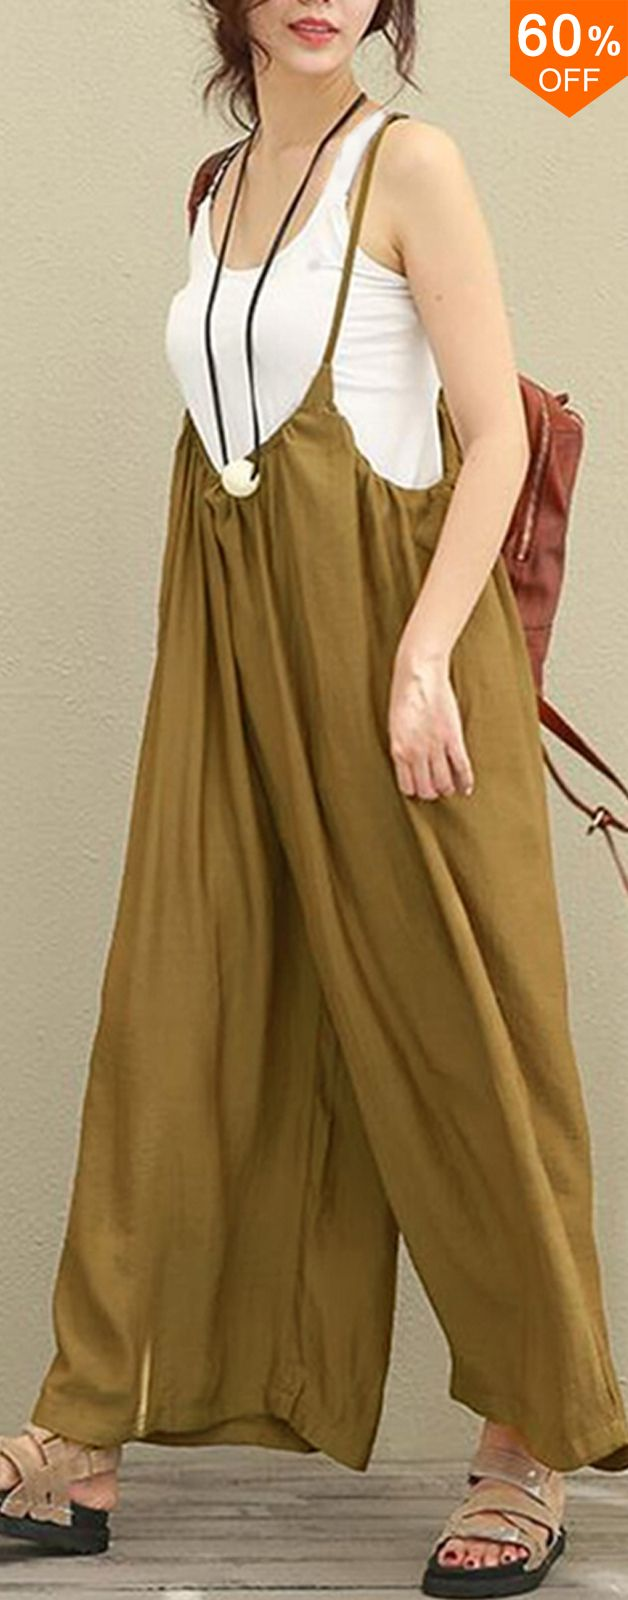 S-5XL Women Casual Sleeveless Strap Baggy Wide Leg Pant Jumpsuit Rompers.jumpsui…